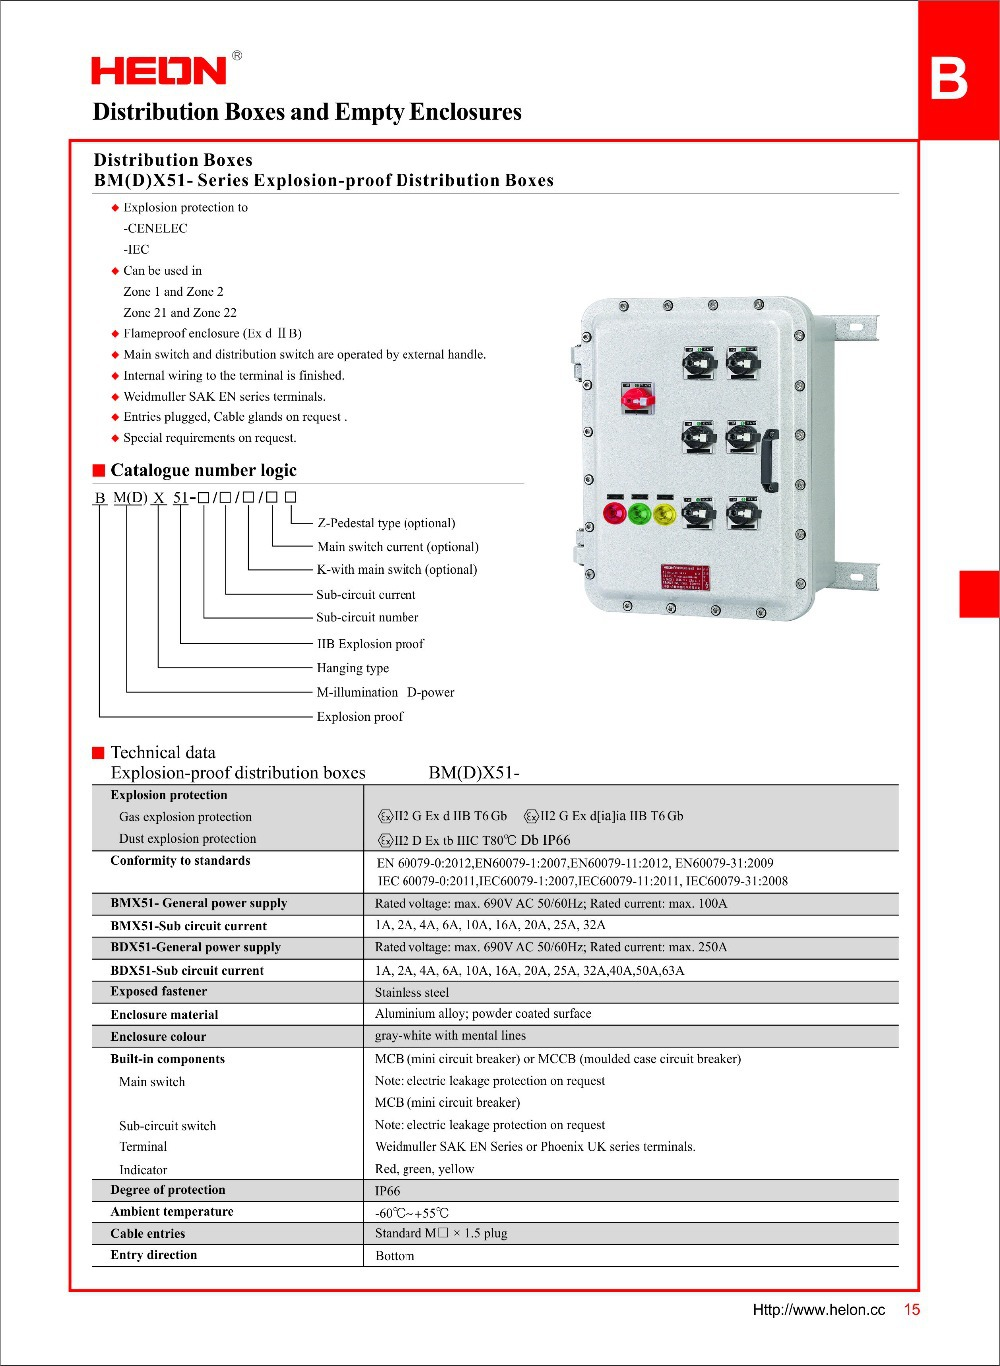 Atex Certificate Explosion Proof Distribution Boxes